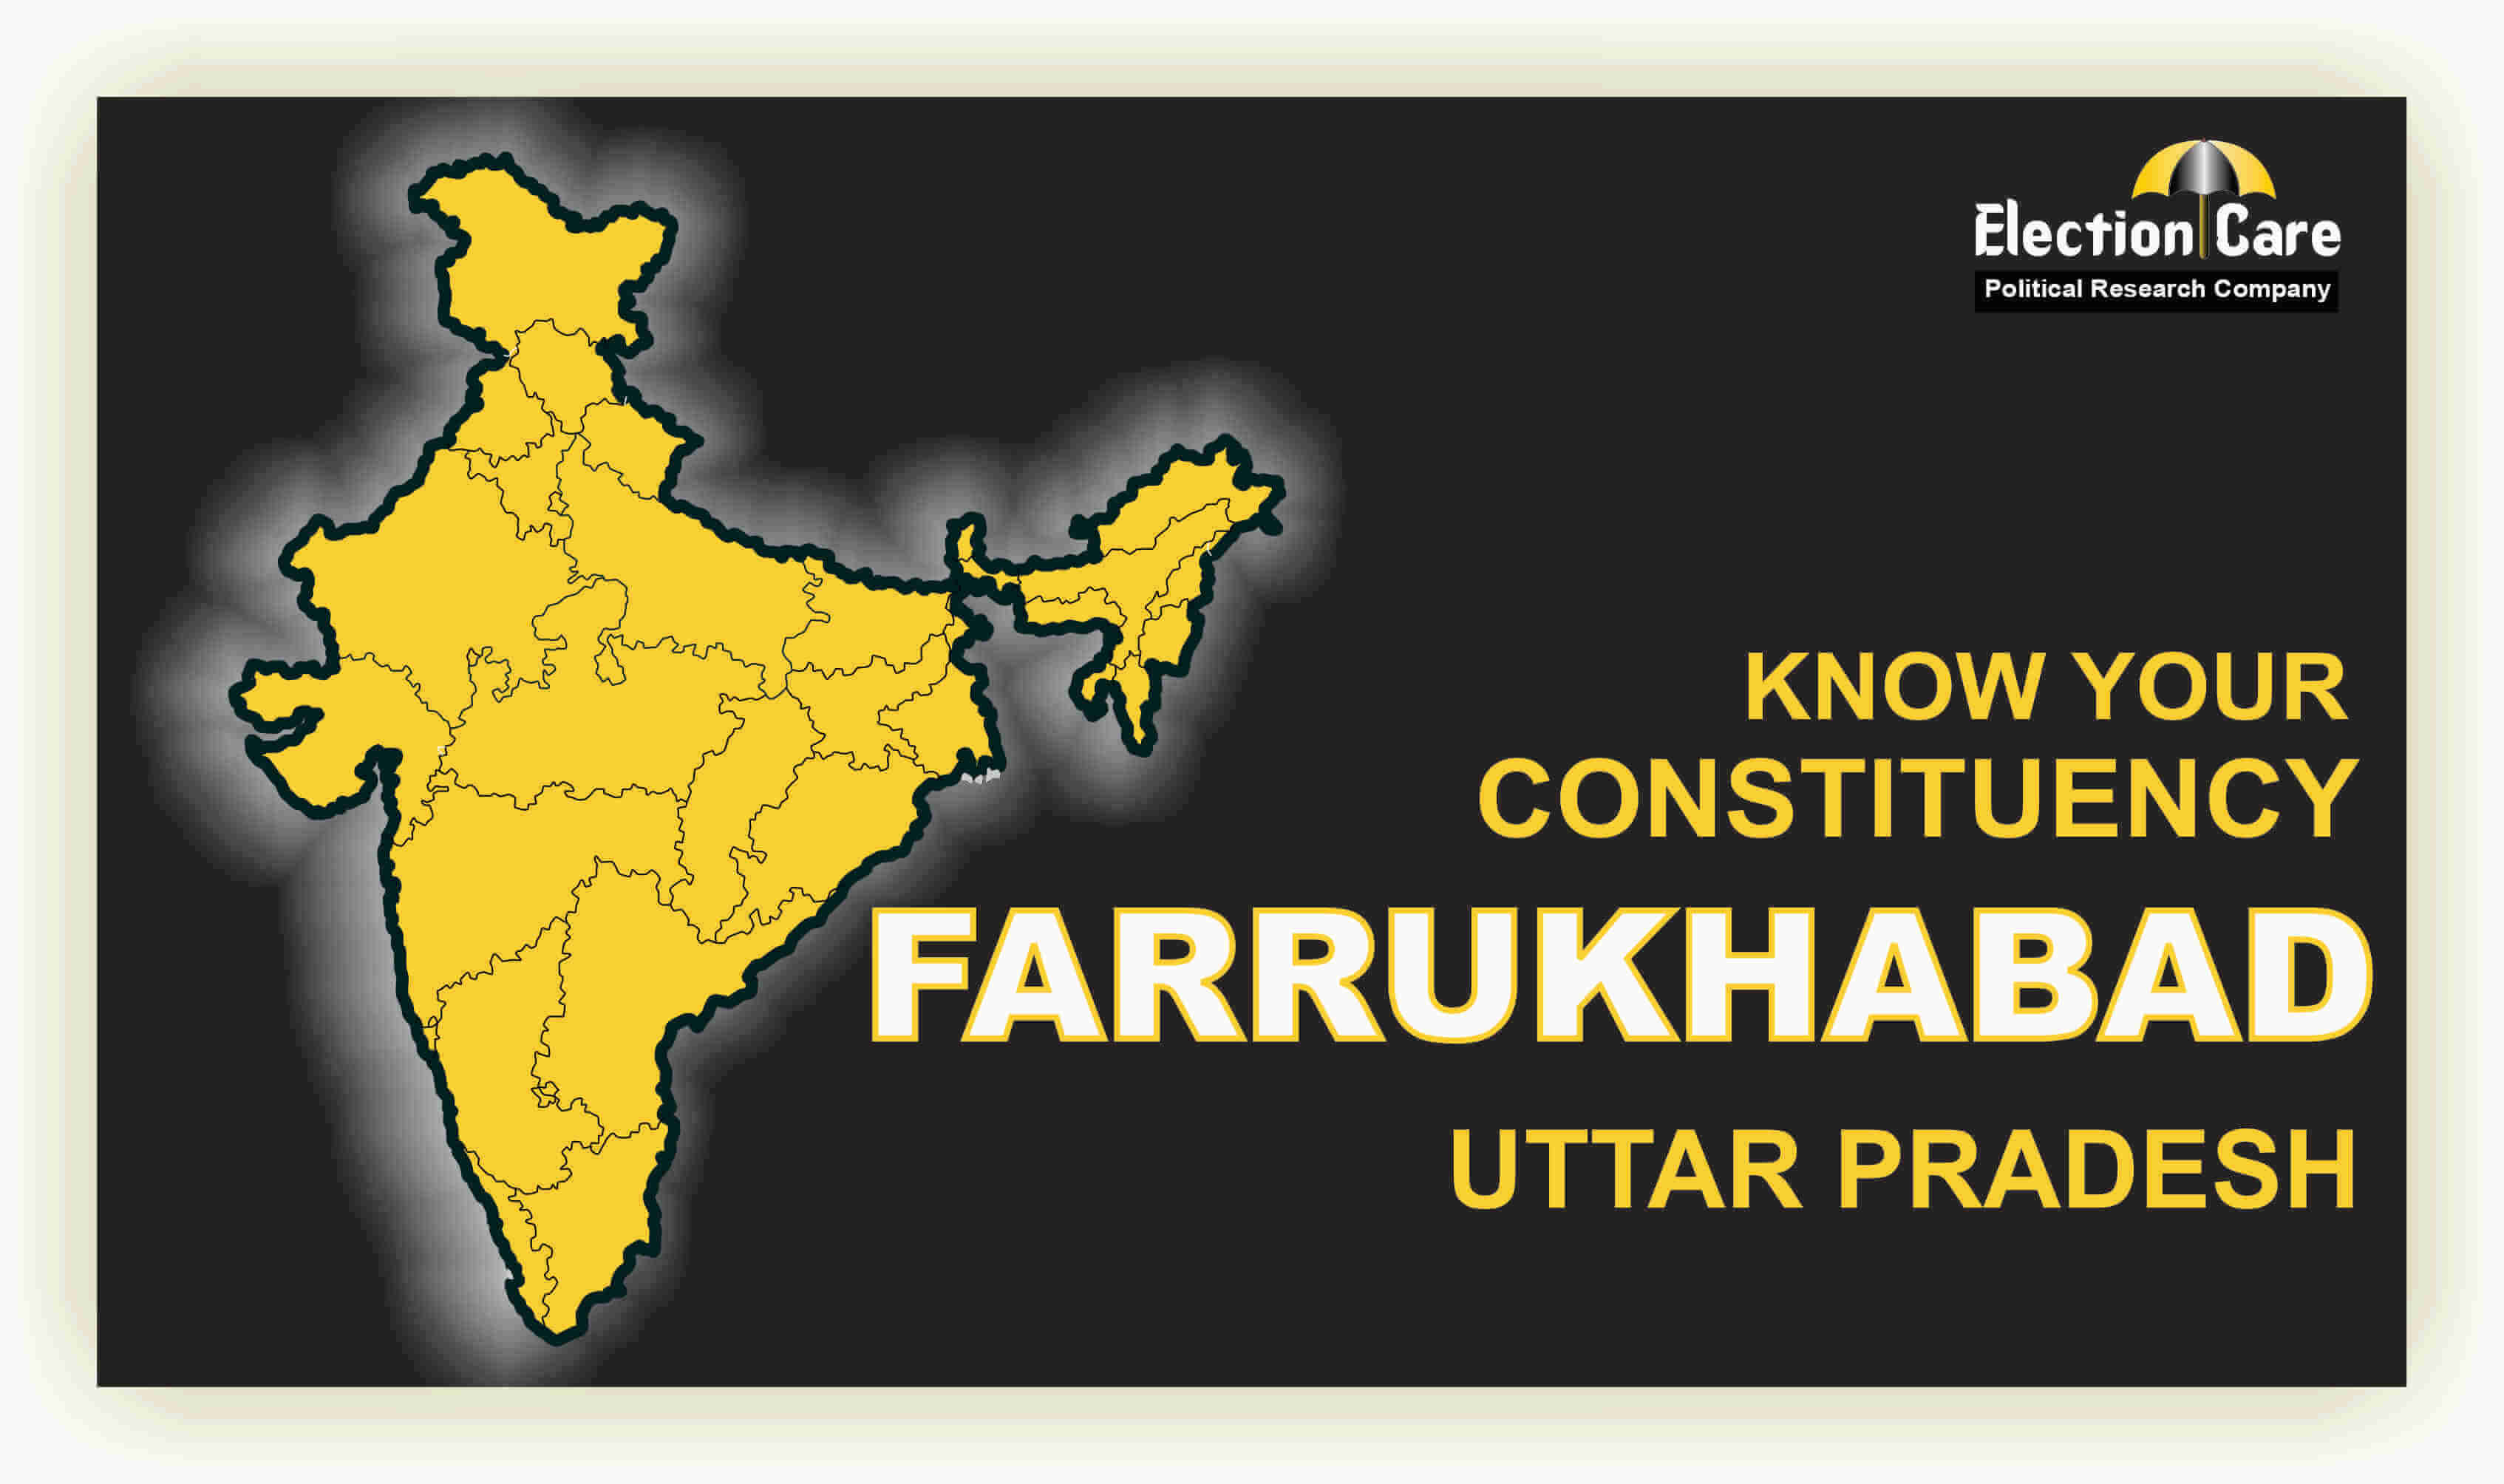 Farrukhabad Parliament Election Result